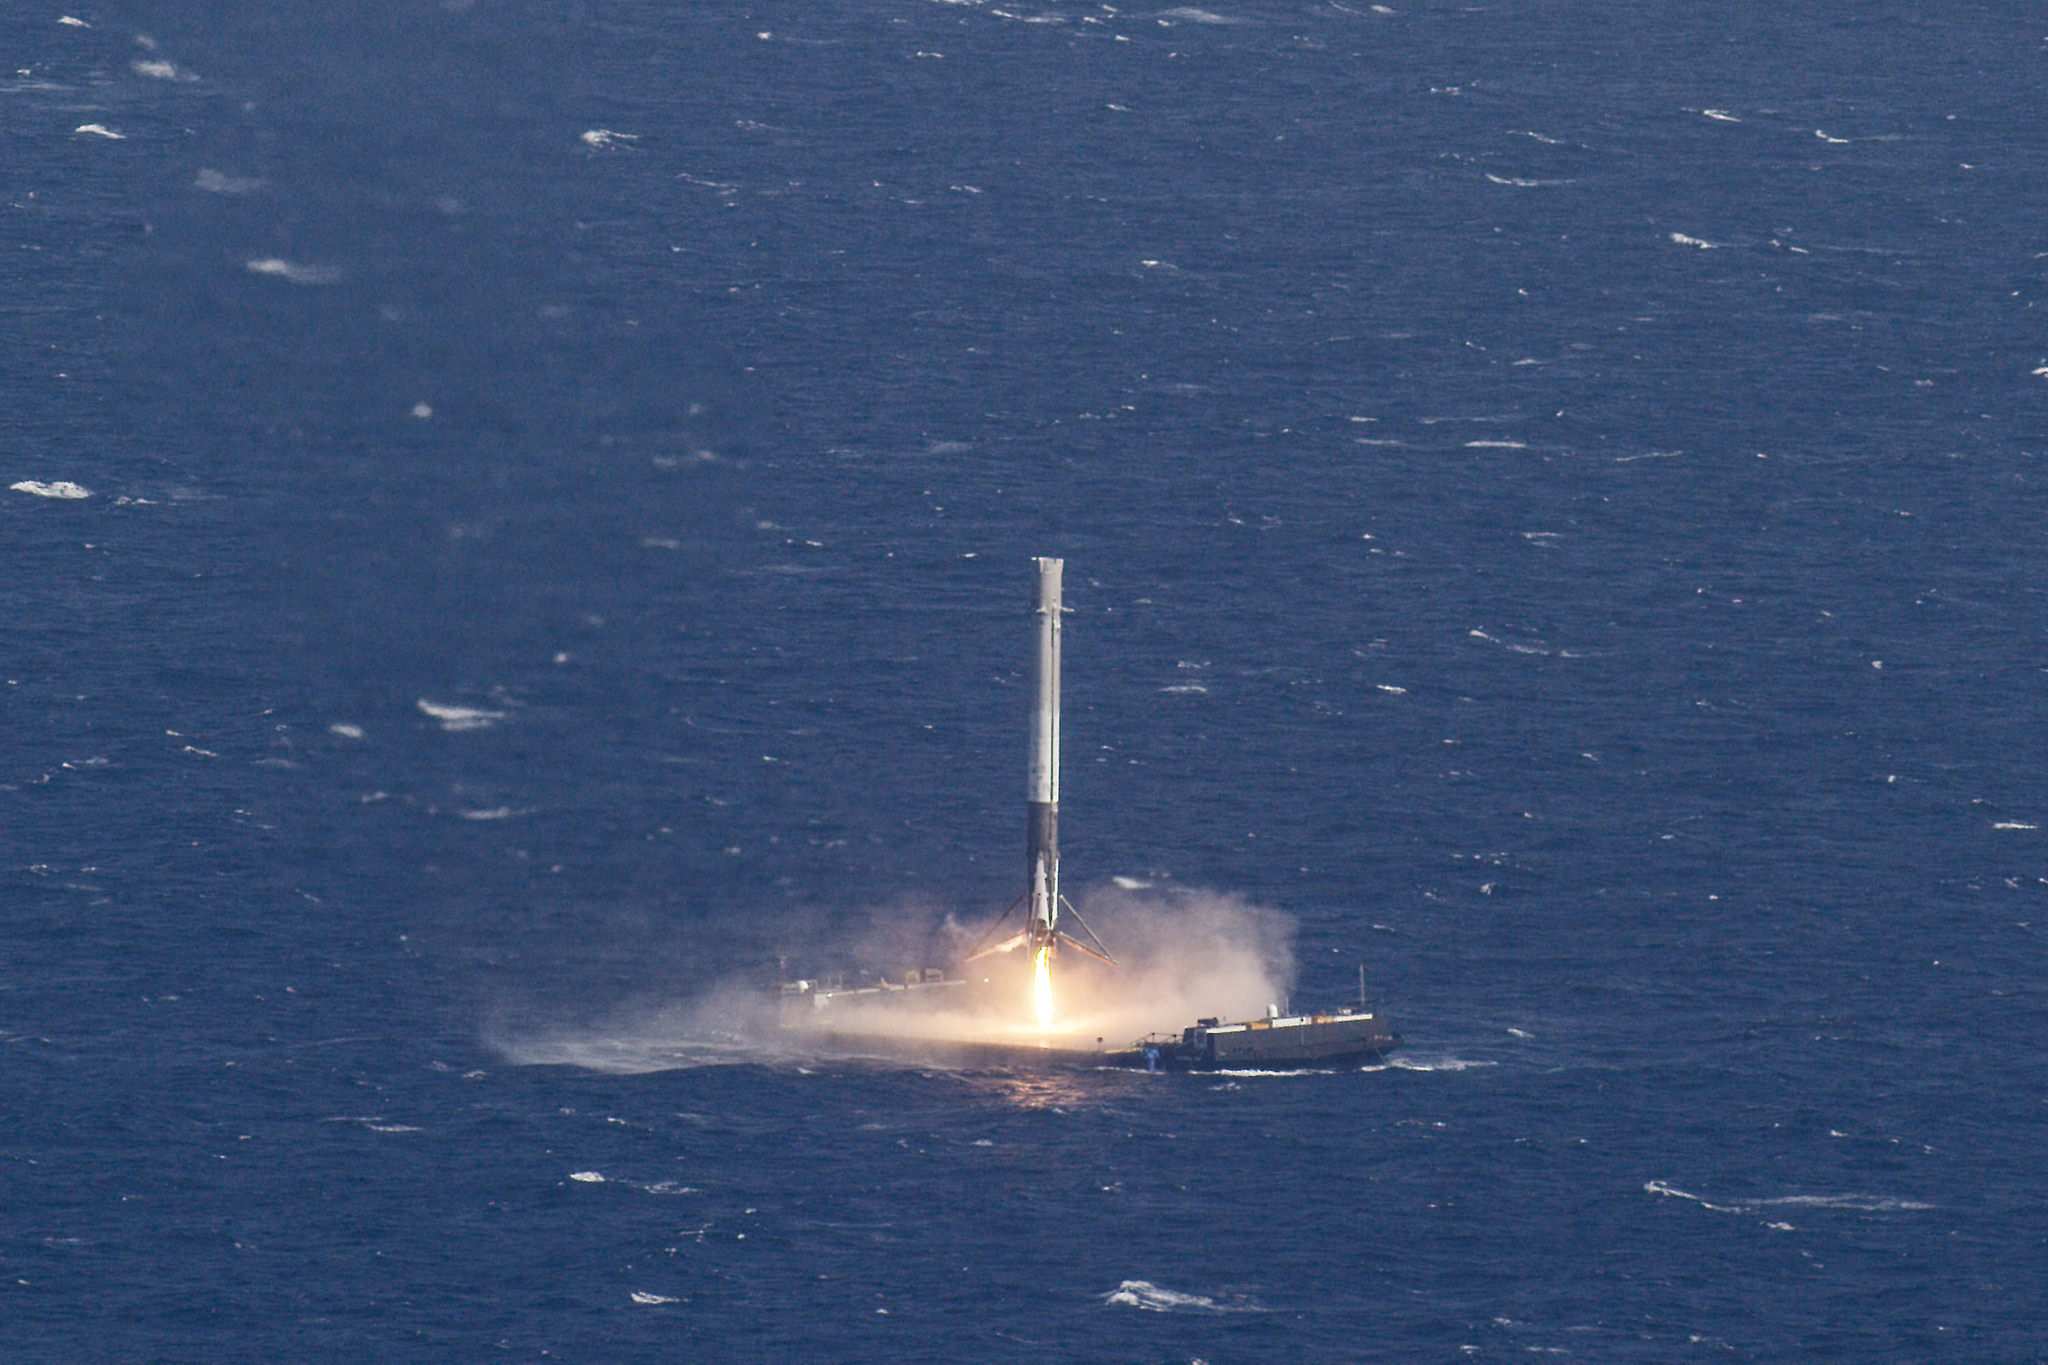 With stunning precision, a SpaceX Falcon 9 rocket touches down on a drone ship landing platform in the Atlantic Ocean after launching a Dragon supply ship into orbit and returning to Earth on April 8, 2016.